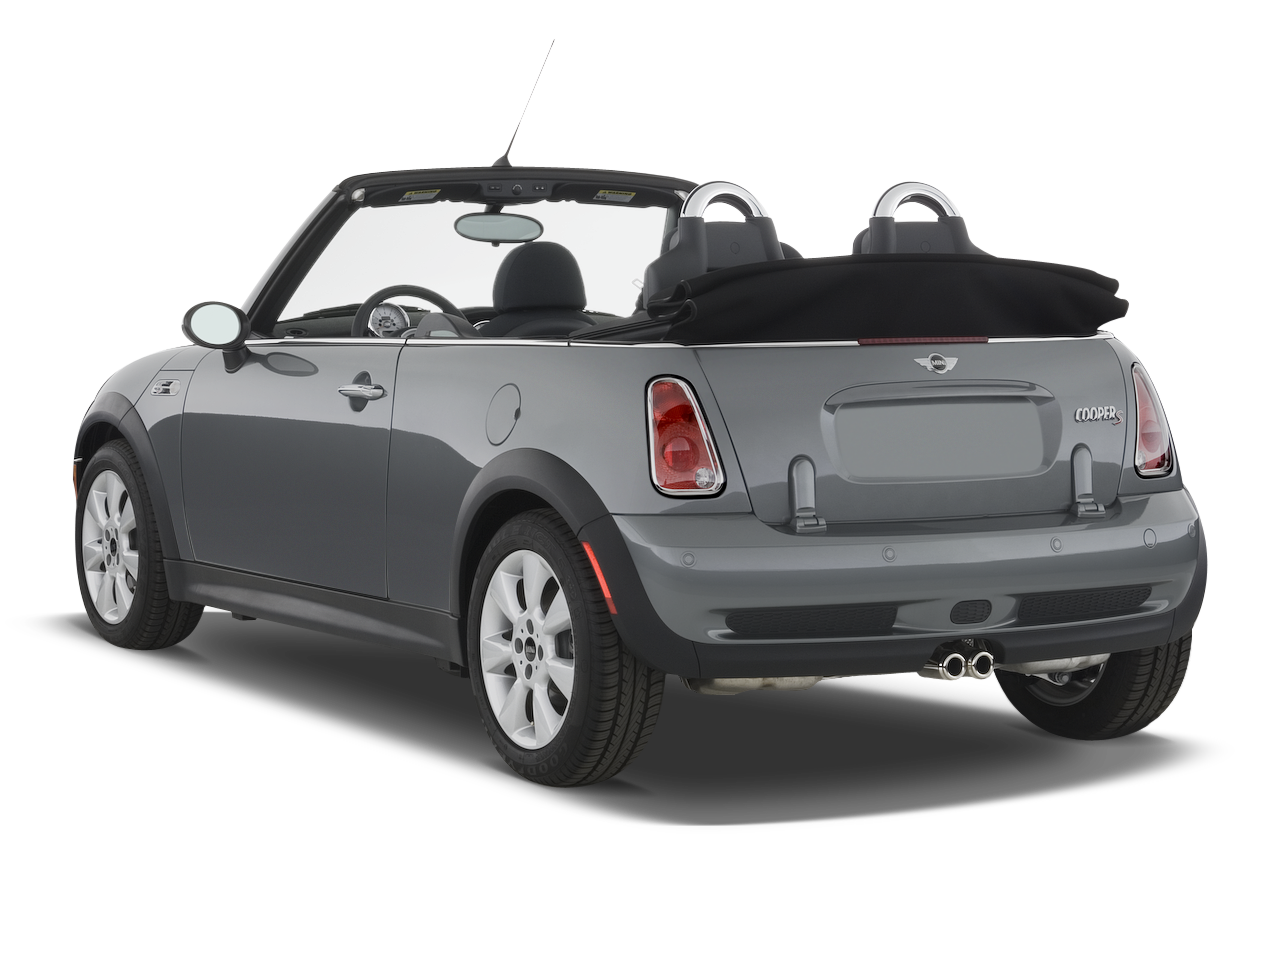 2007 Mini Cooper S John Cooper Works - Latest News, Features, and ...